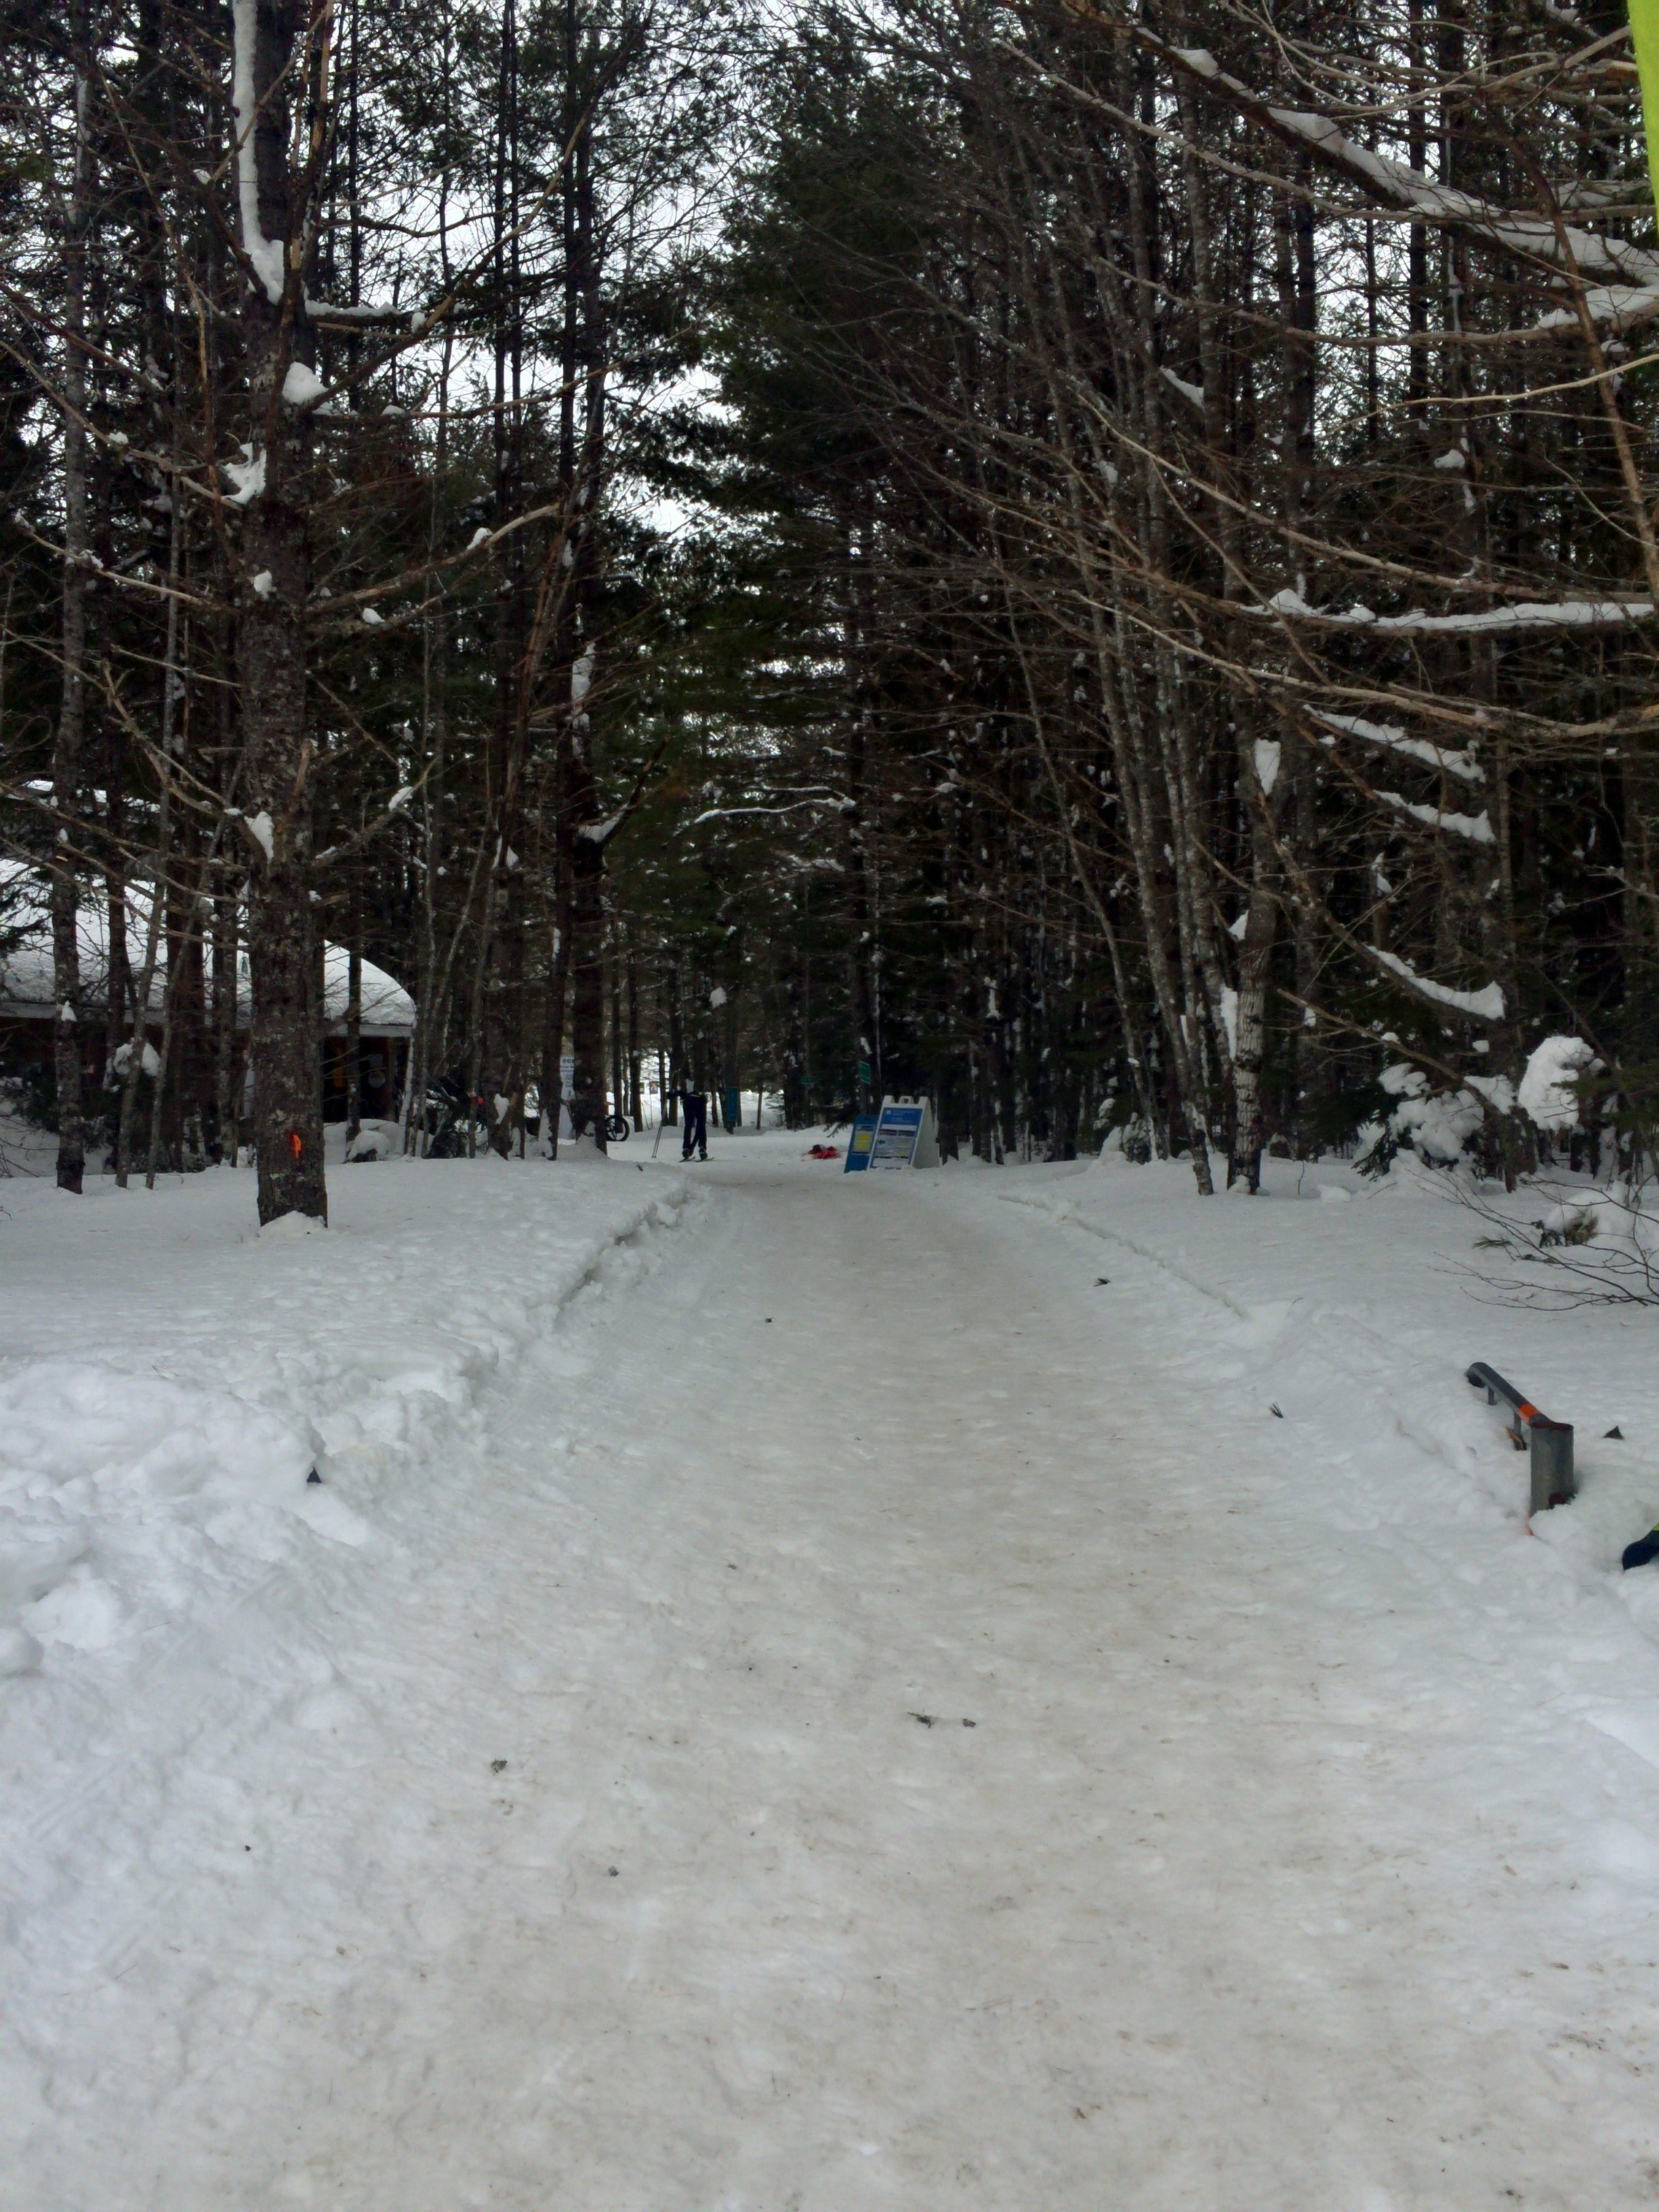 The snow was packed down nicely for the fat bikes.